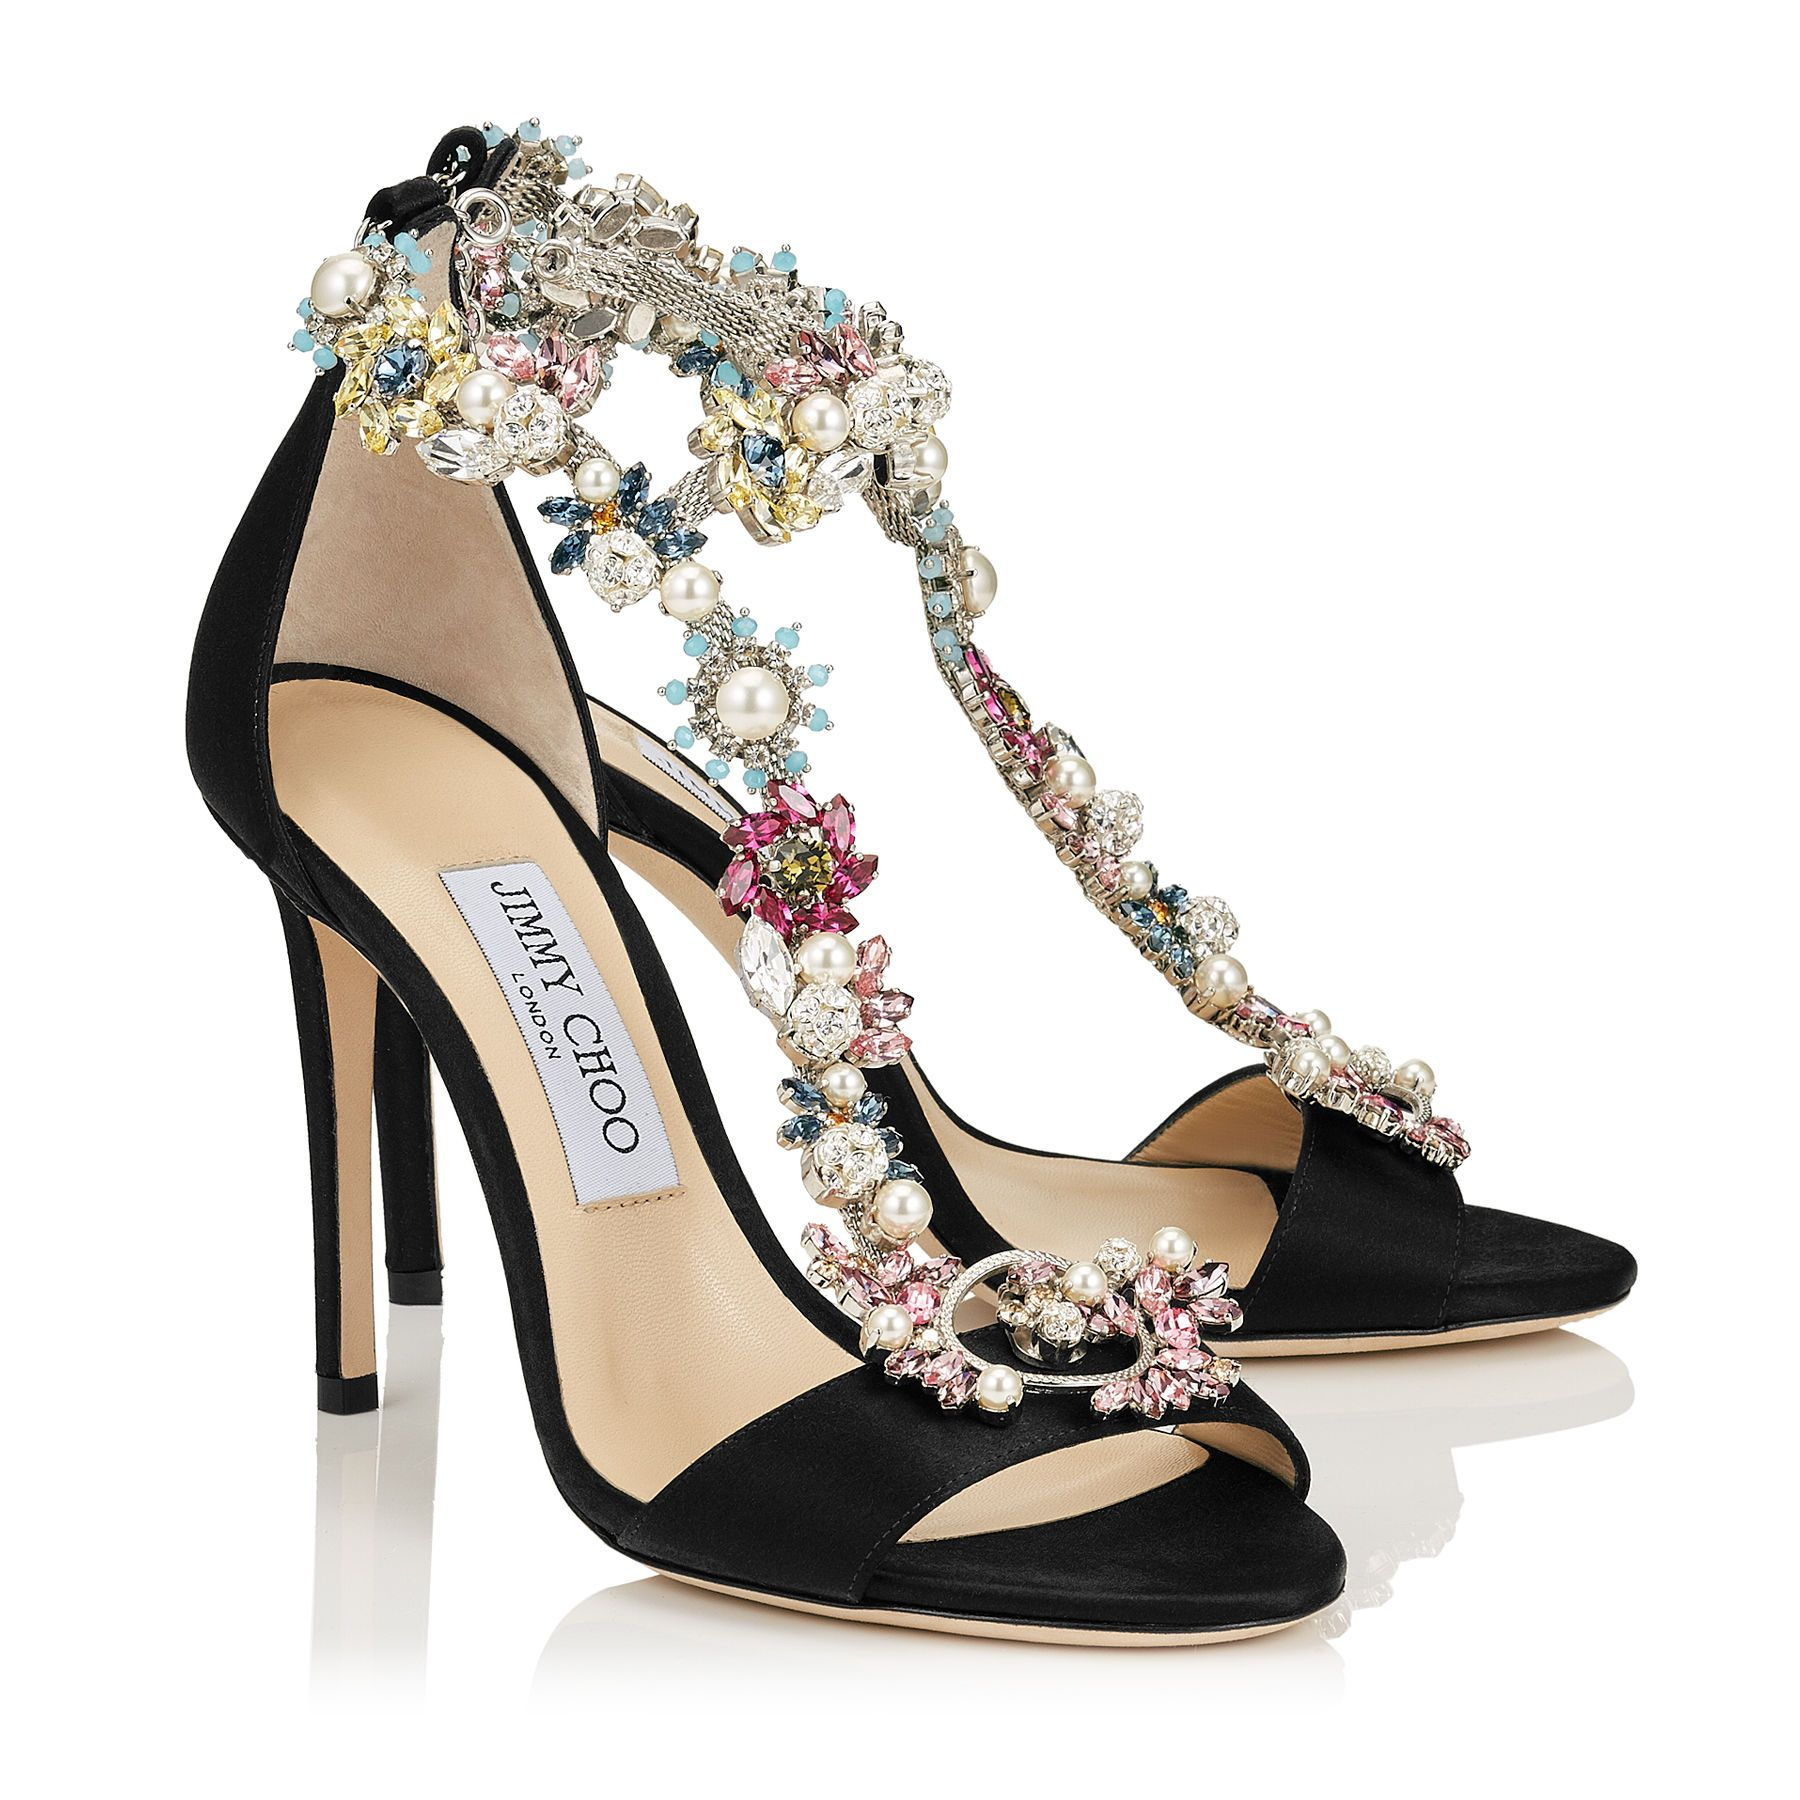 ff817d117005 Dusty Rose Satin Sandals with Camellia Mix Anklet